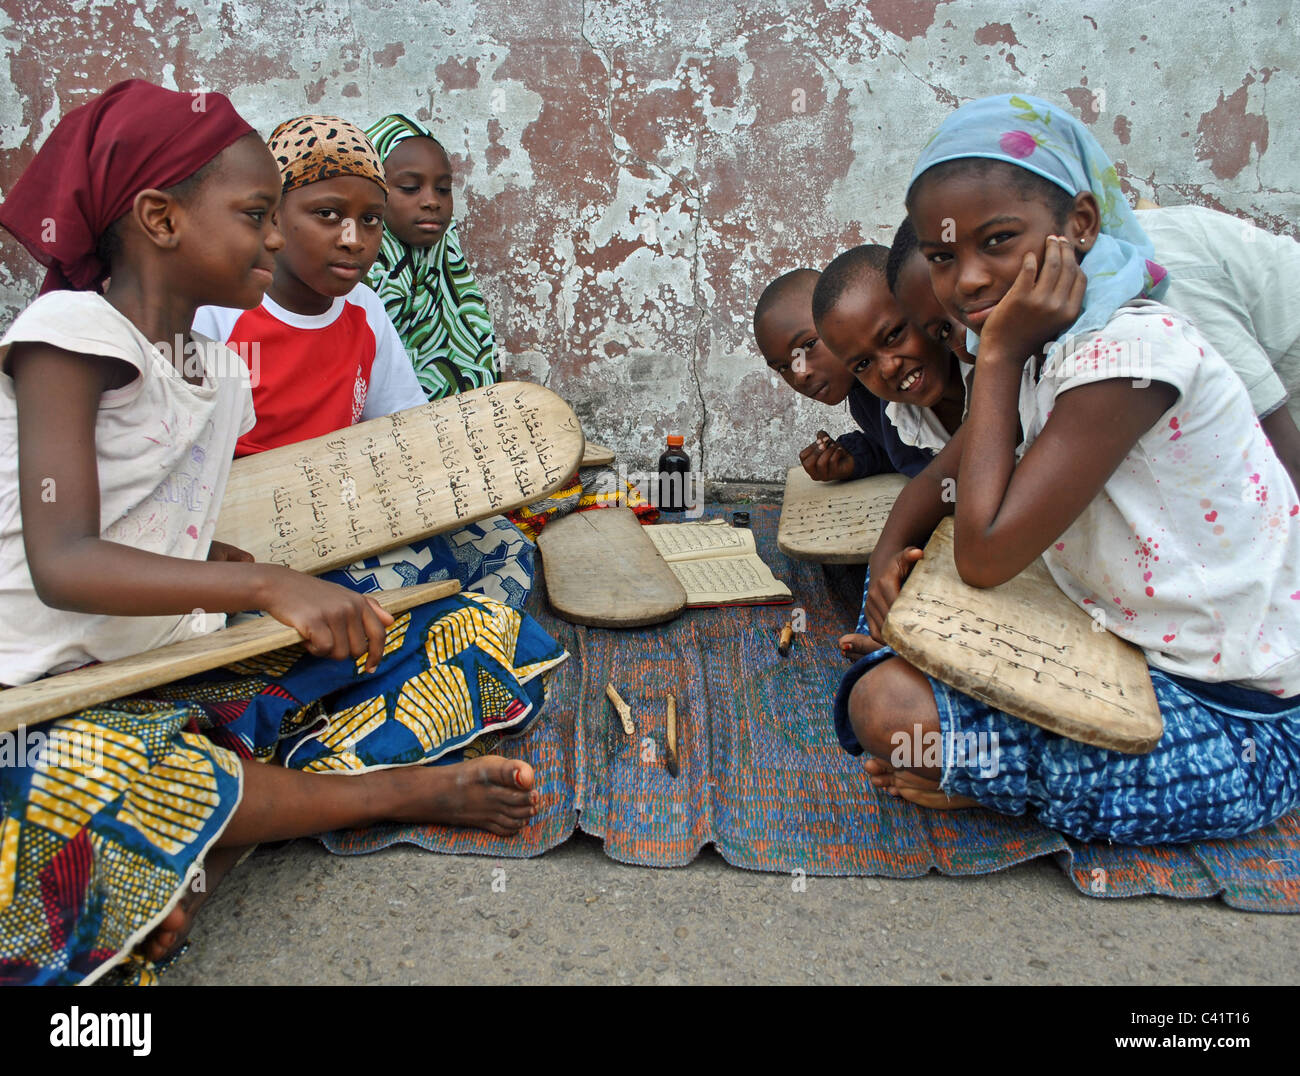 Girls learning the Quran at an islamic street school in Abidjan, Ivory coast Stock Photo